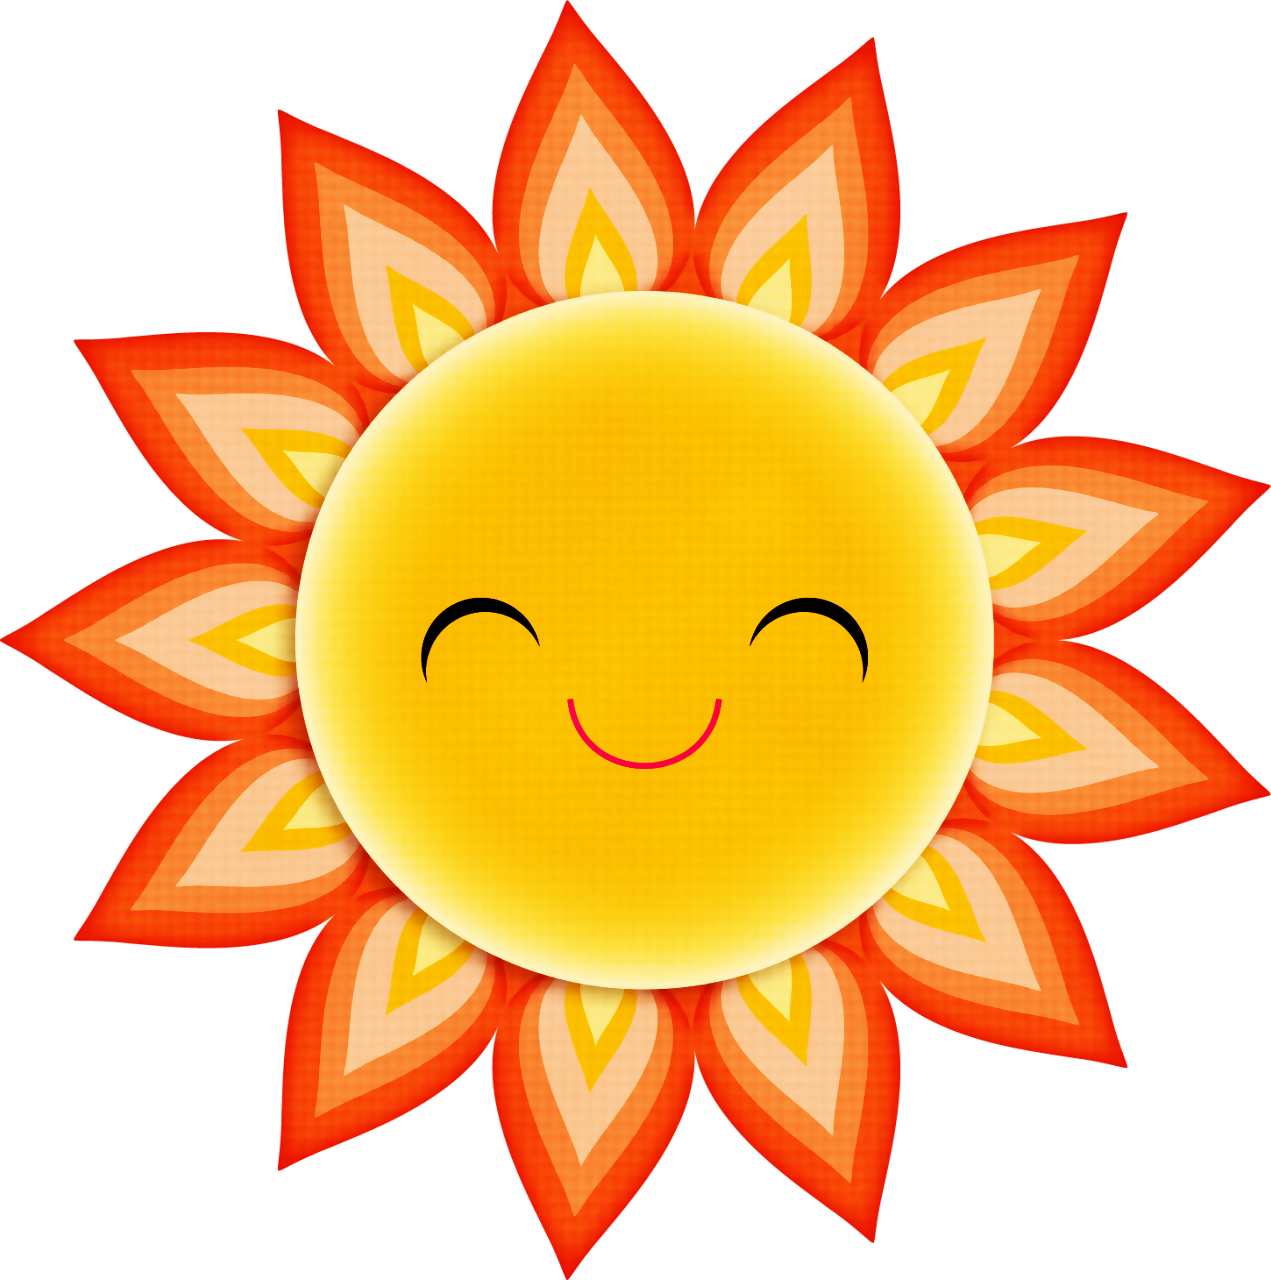 Healthy sun clipart picture freeuse download Sun PNG Transparent | Summer | Pinterest | Scrapbook picture freeuse download